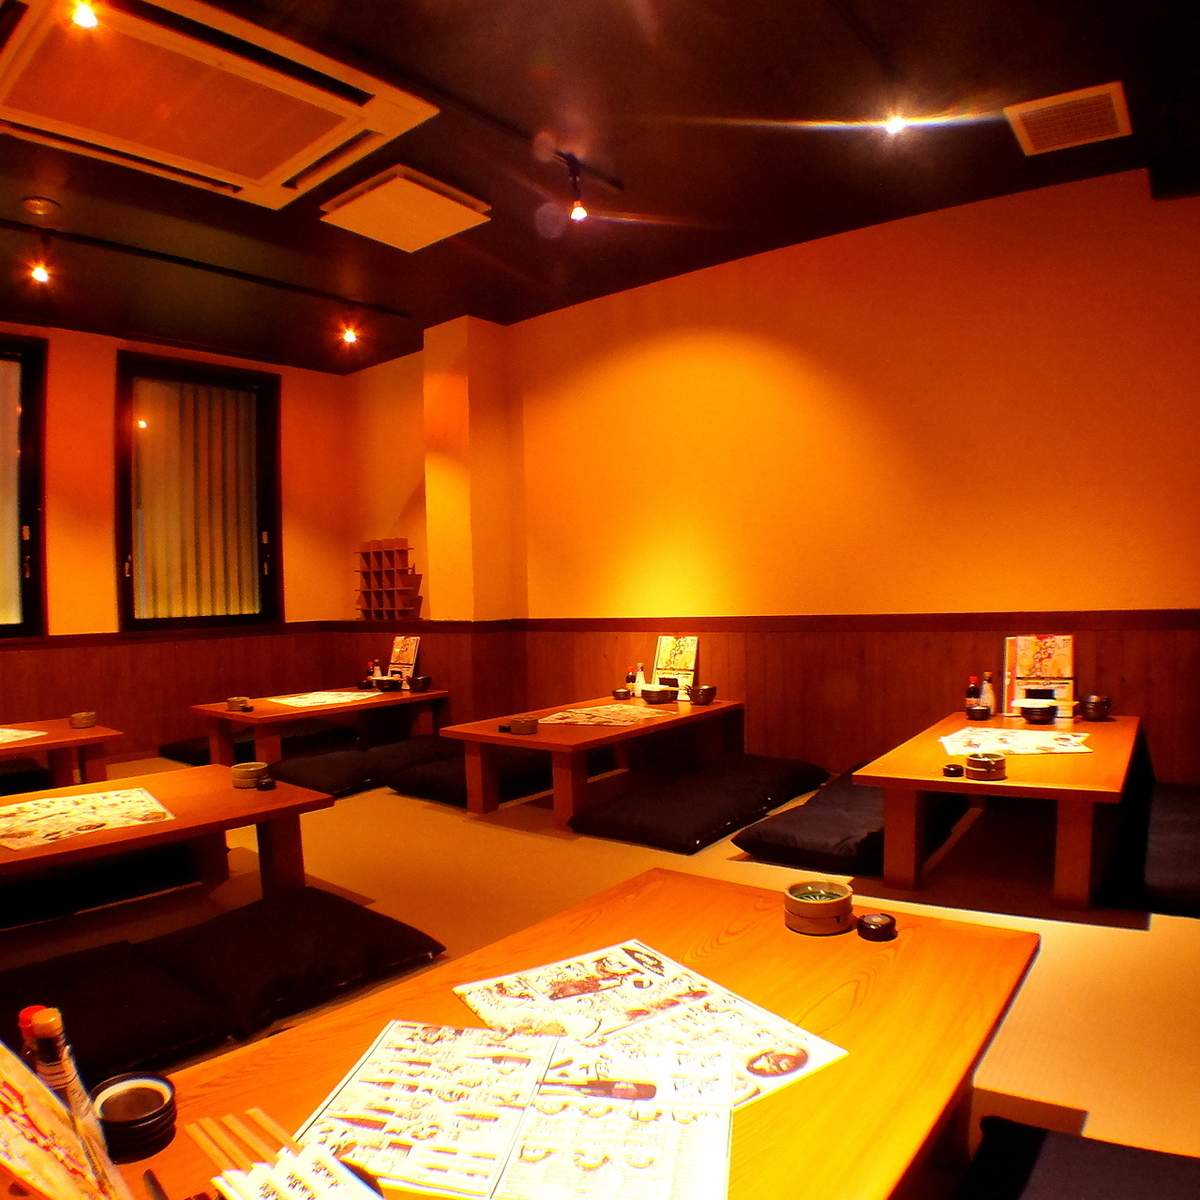 【2F】 Japanese-style dressing room where you can relax and enjoy (up to 27 people can be accommodated)